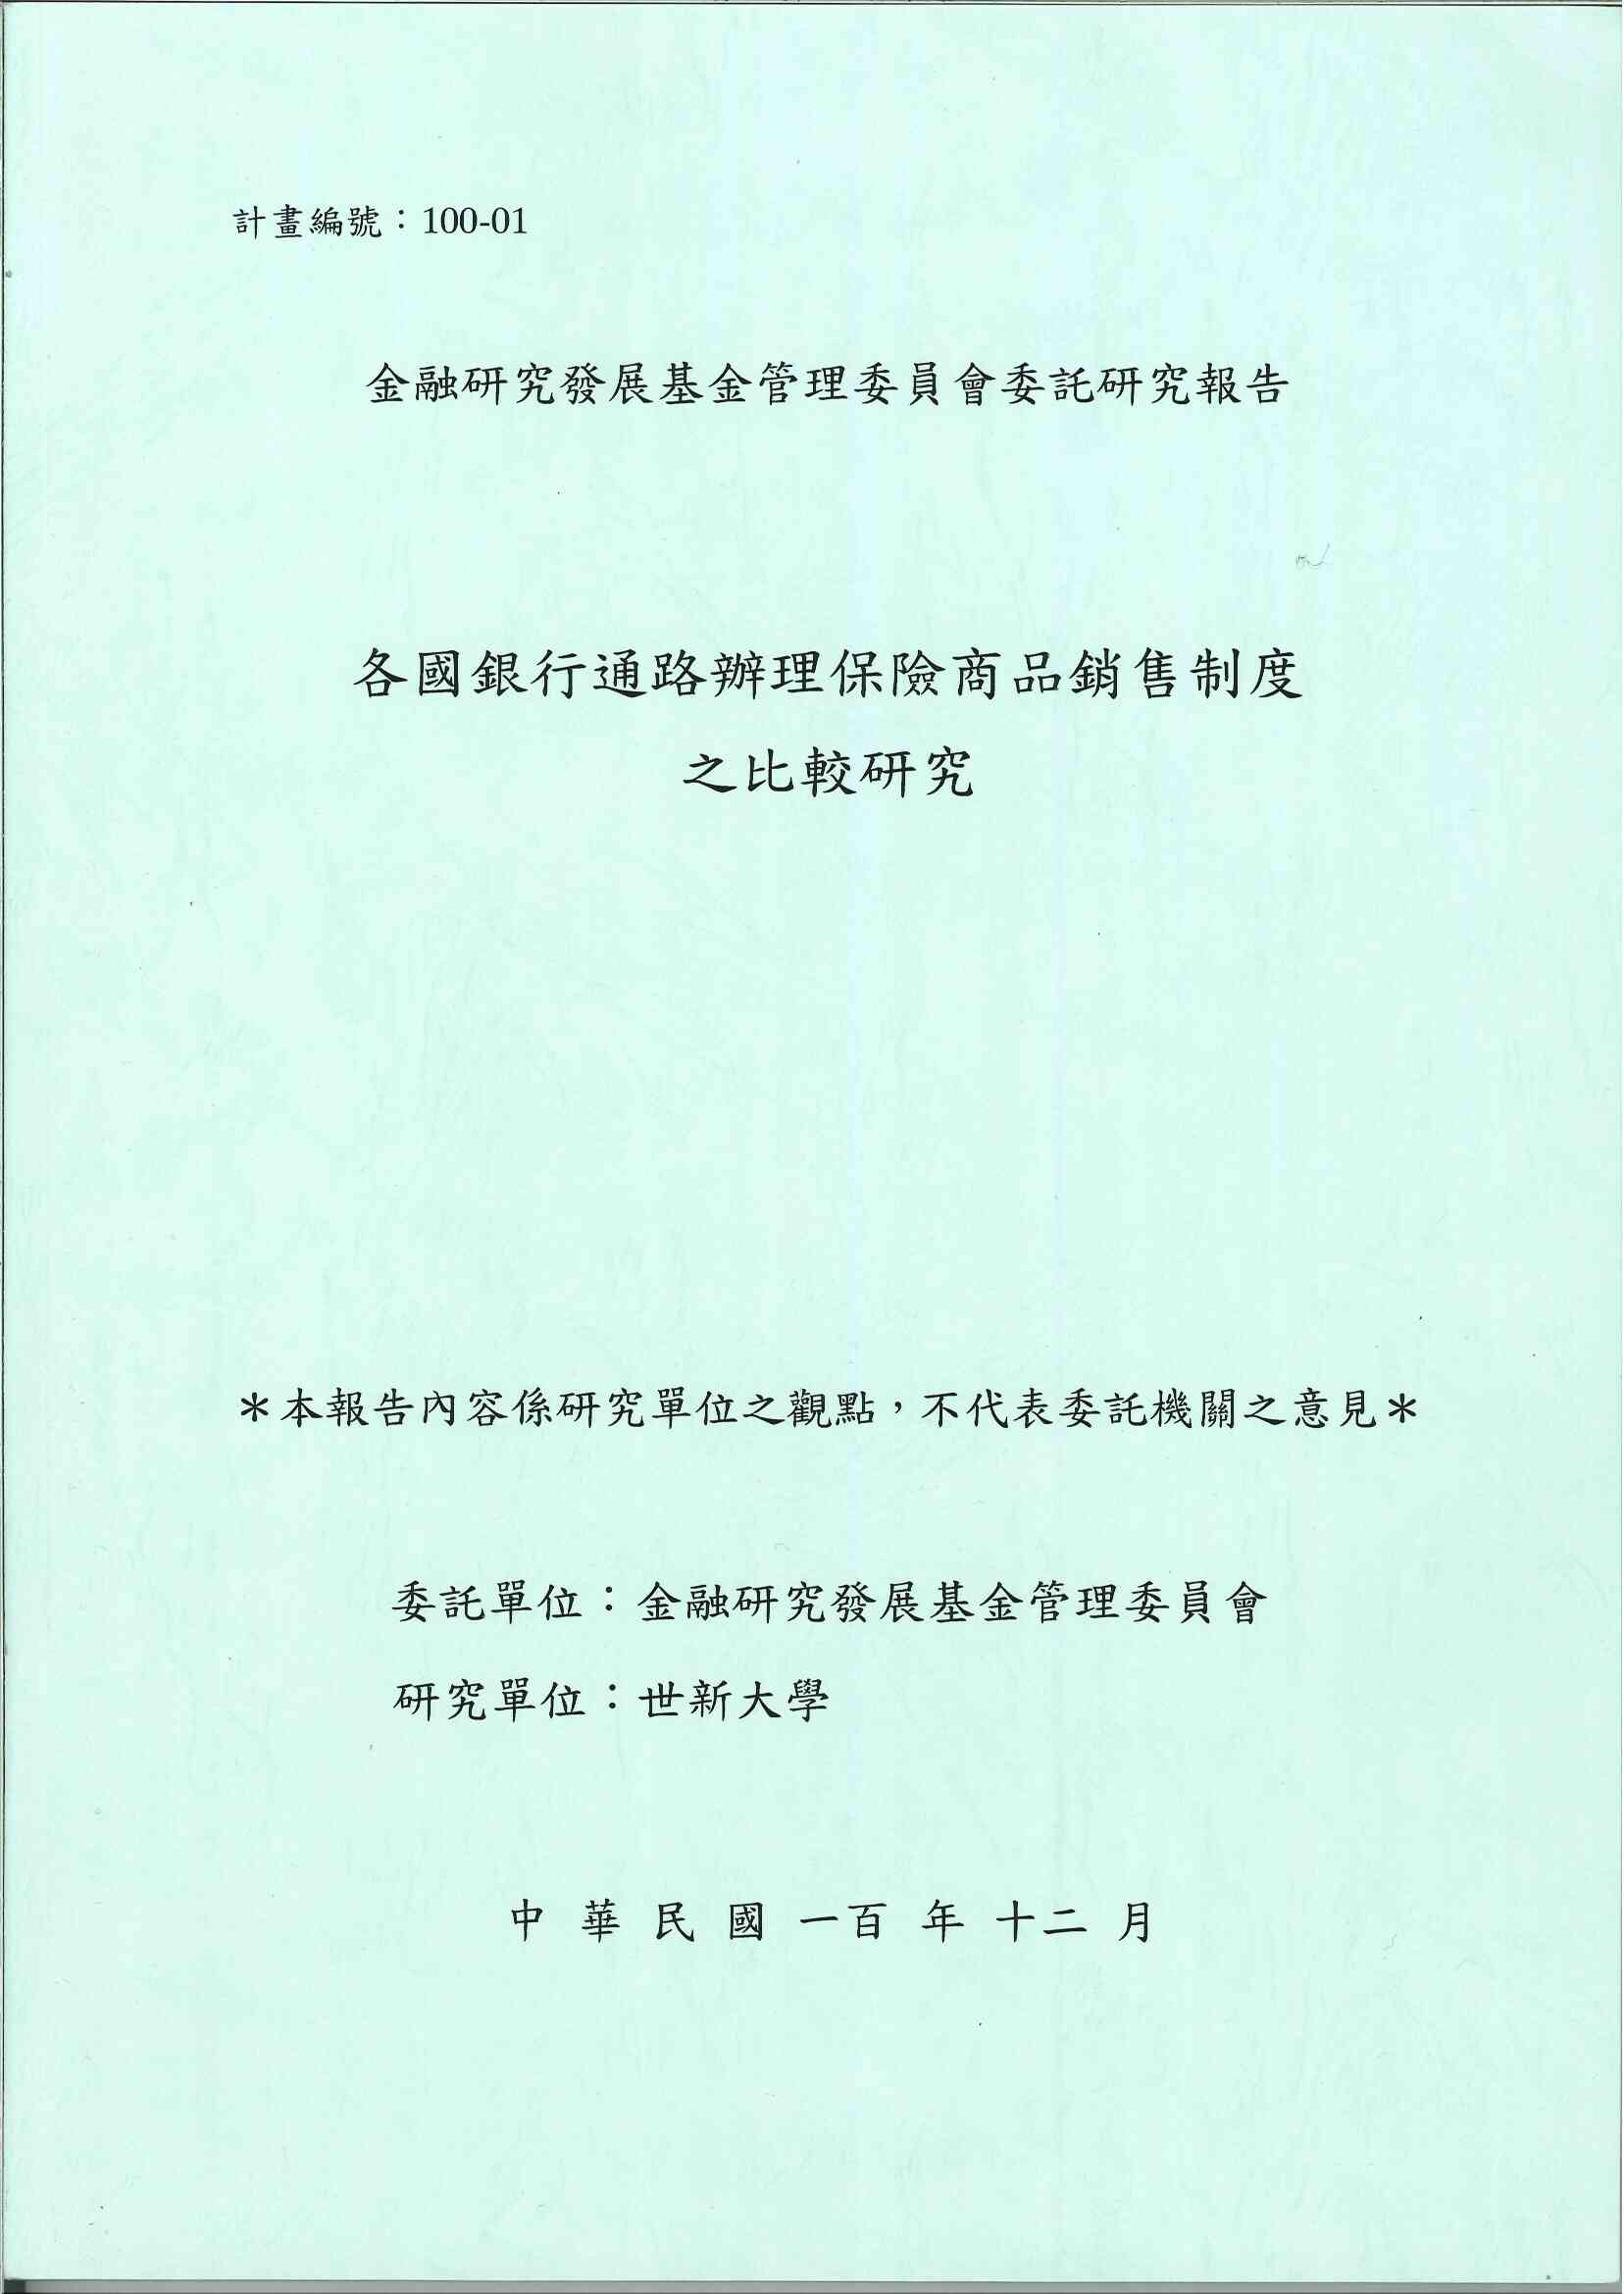 各國銀行通路辦理保險商品銷售制度之比較研究=An international comparative study on bank insurance models (bancassurance)